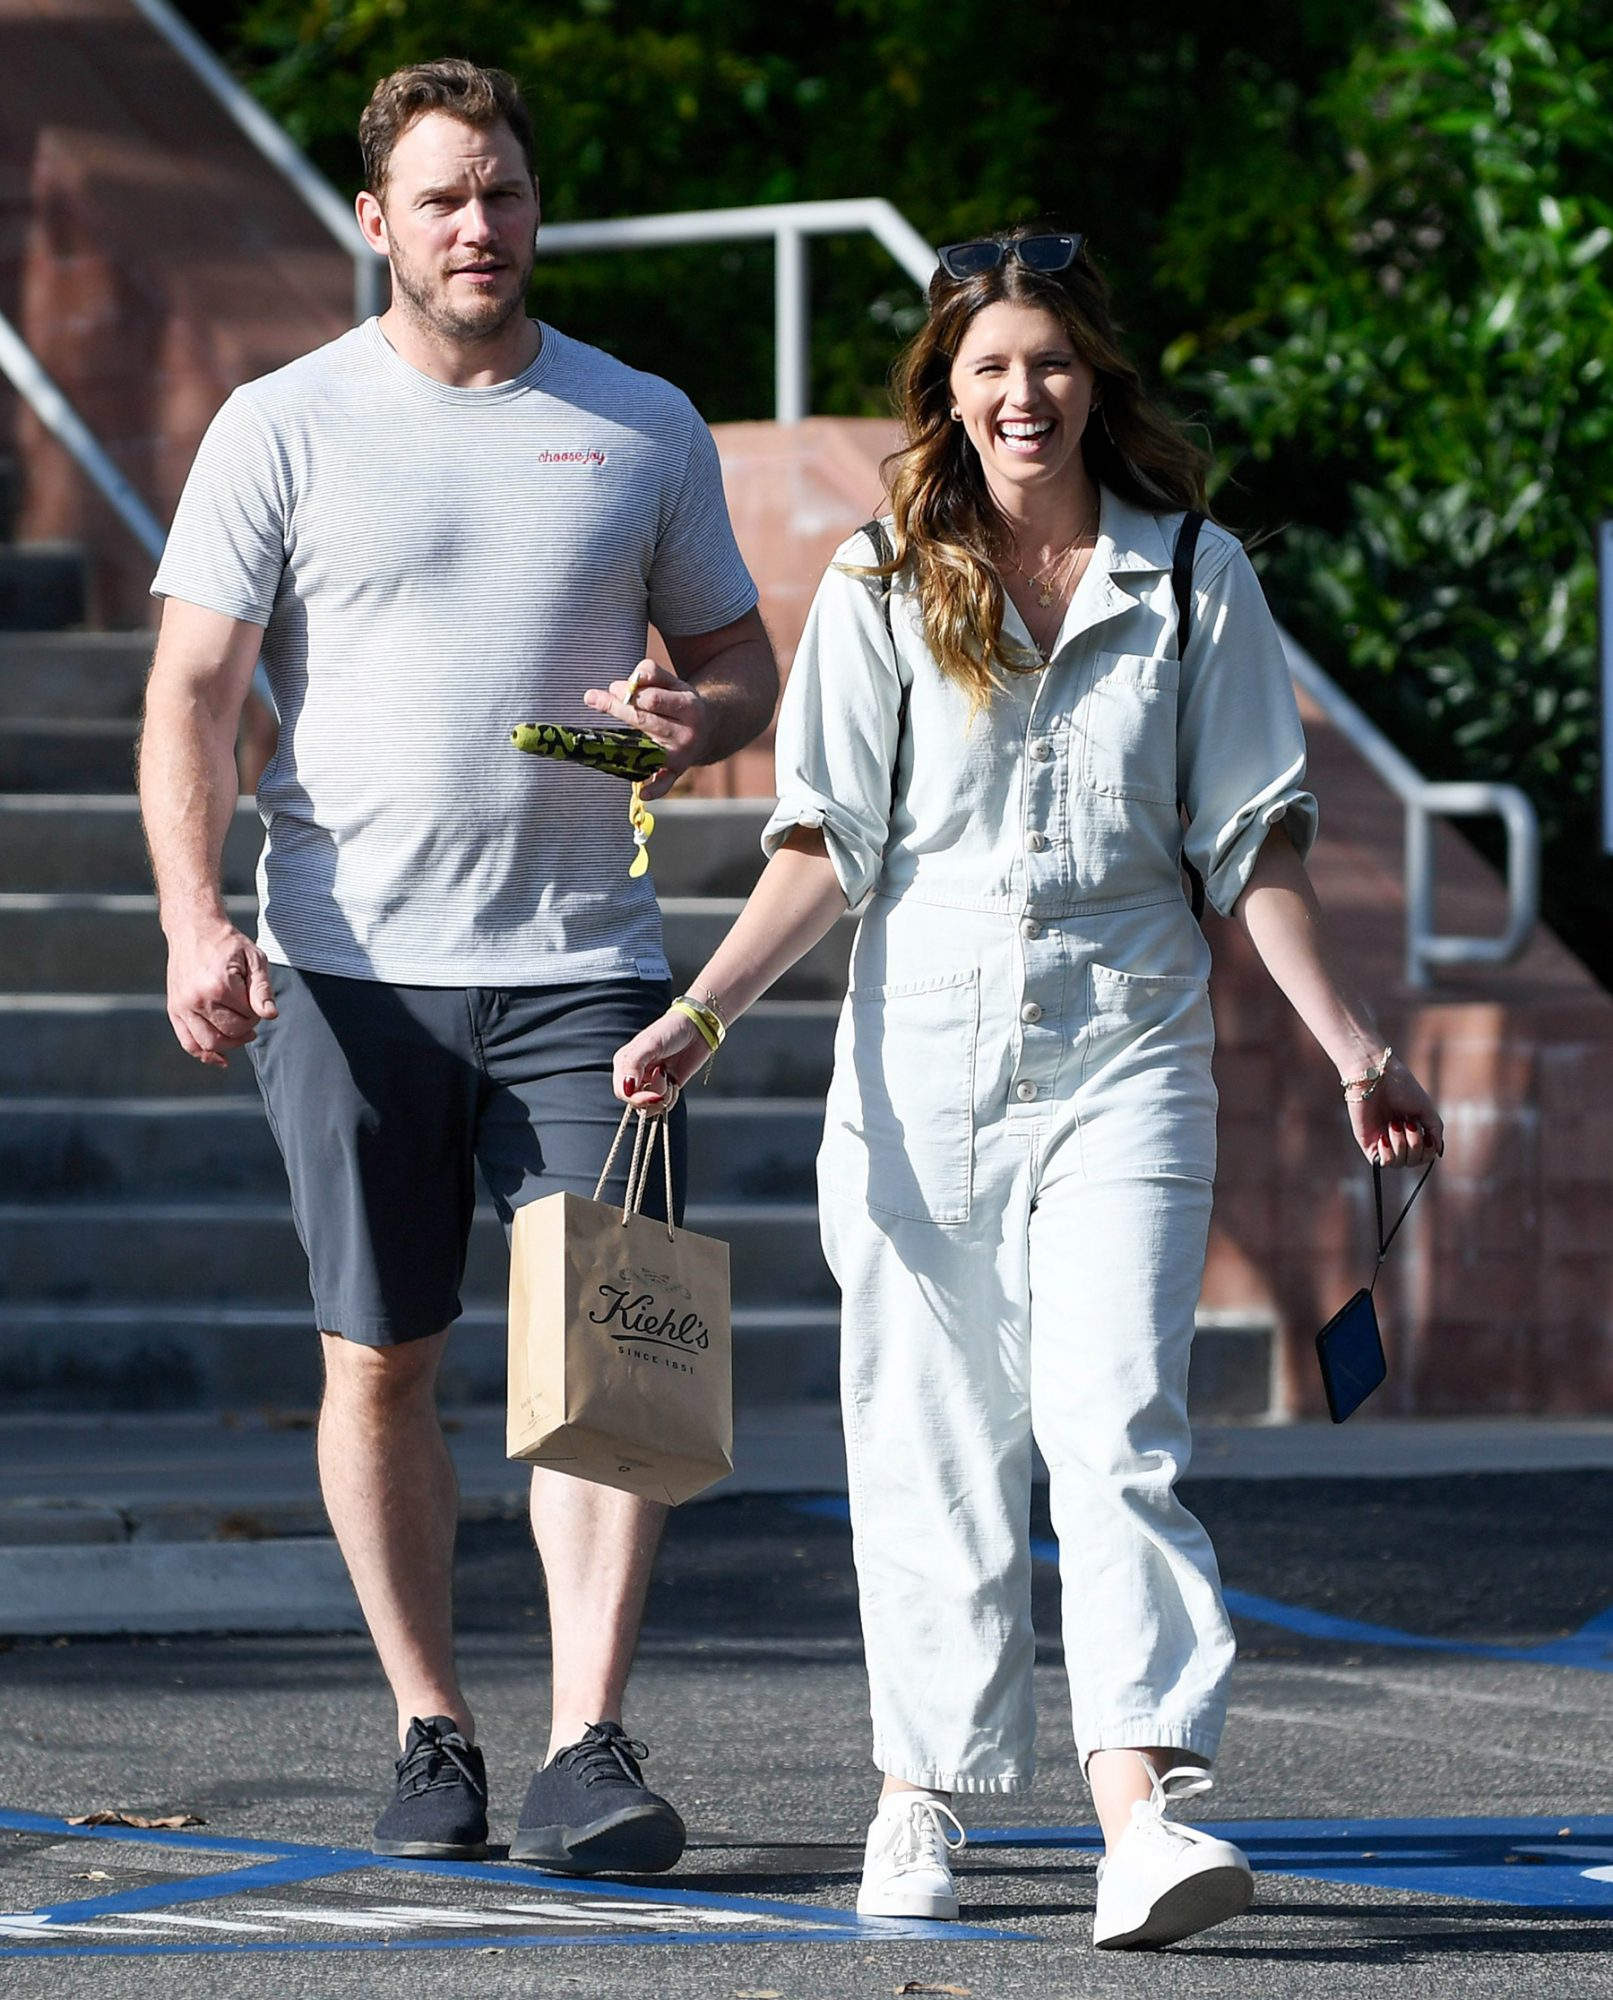 EXCLUSIVE: Chris Pratt and Katherine Schwarzenegger leave a boy scout meeting